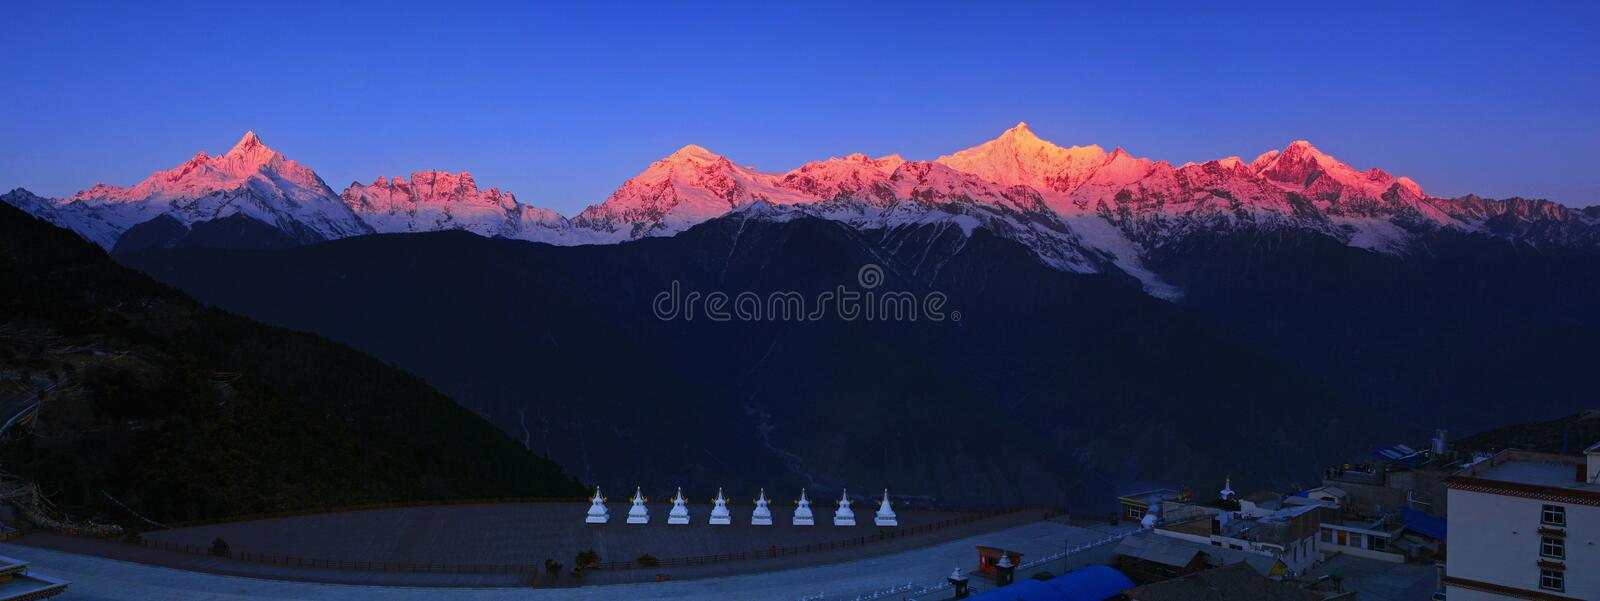 Meri Snow Mountain. Meili snow mountain is also called the snow prince, deqin county is located in the diqing Tibetan autonomous prefecture, yunnan province royalty free stock image